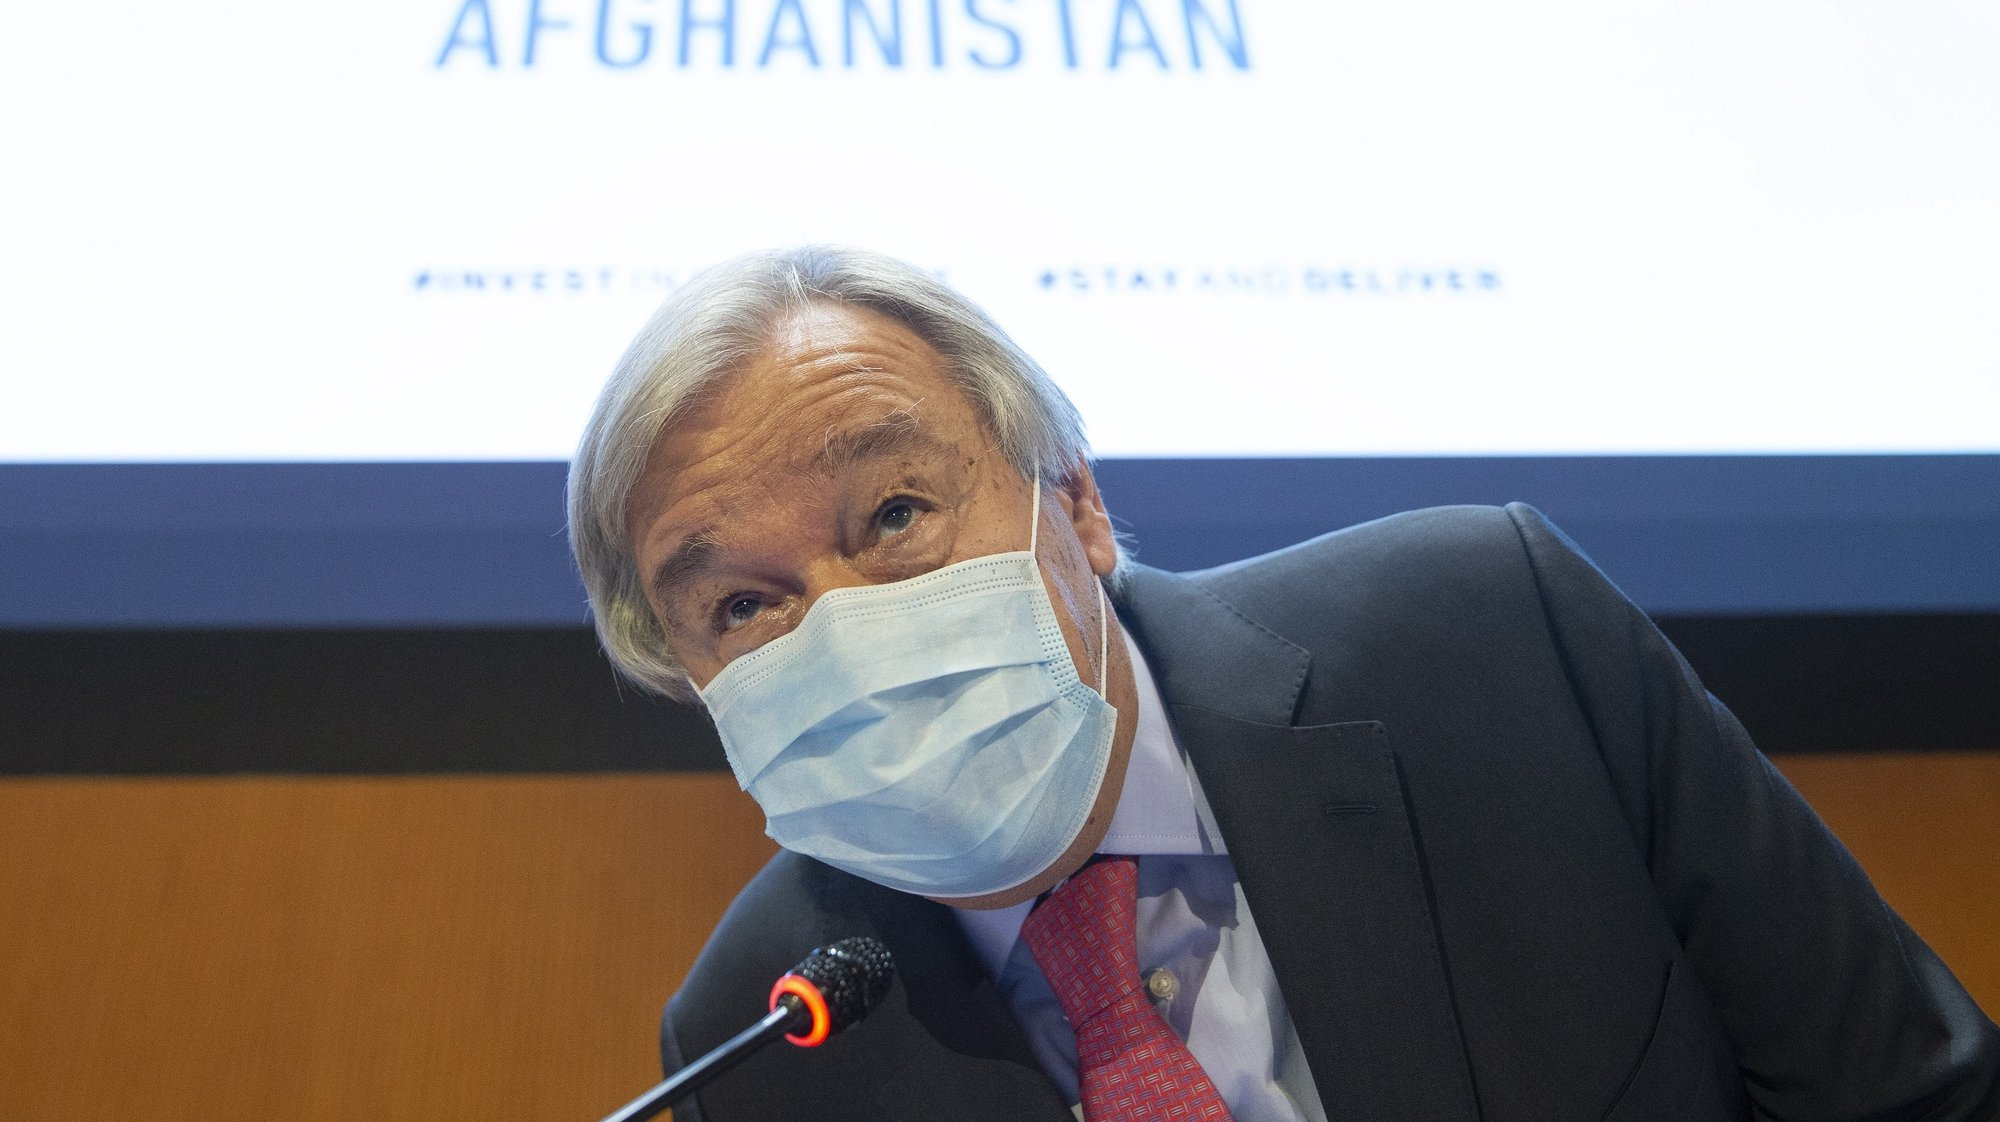 epa09465502 UN Secretary-General Antonio Guterres during the High-Level Ministerial Event on the Humanitarian Situation in Afghanistan, at the European headquarters of the United Nation, in Geneva, Switzerland 13 September 2021.  EPA/SALVATORE DI NOLFI